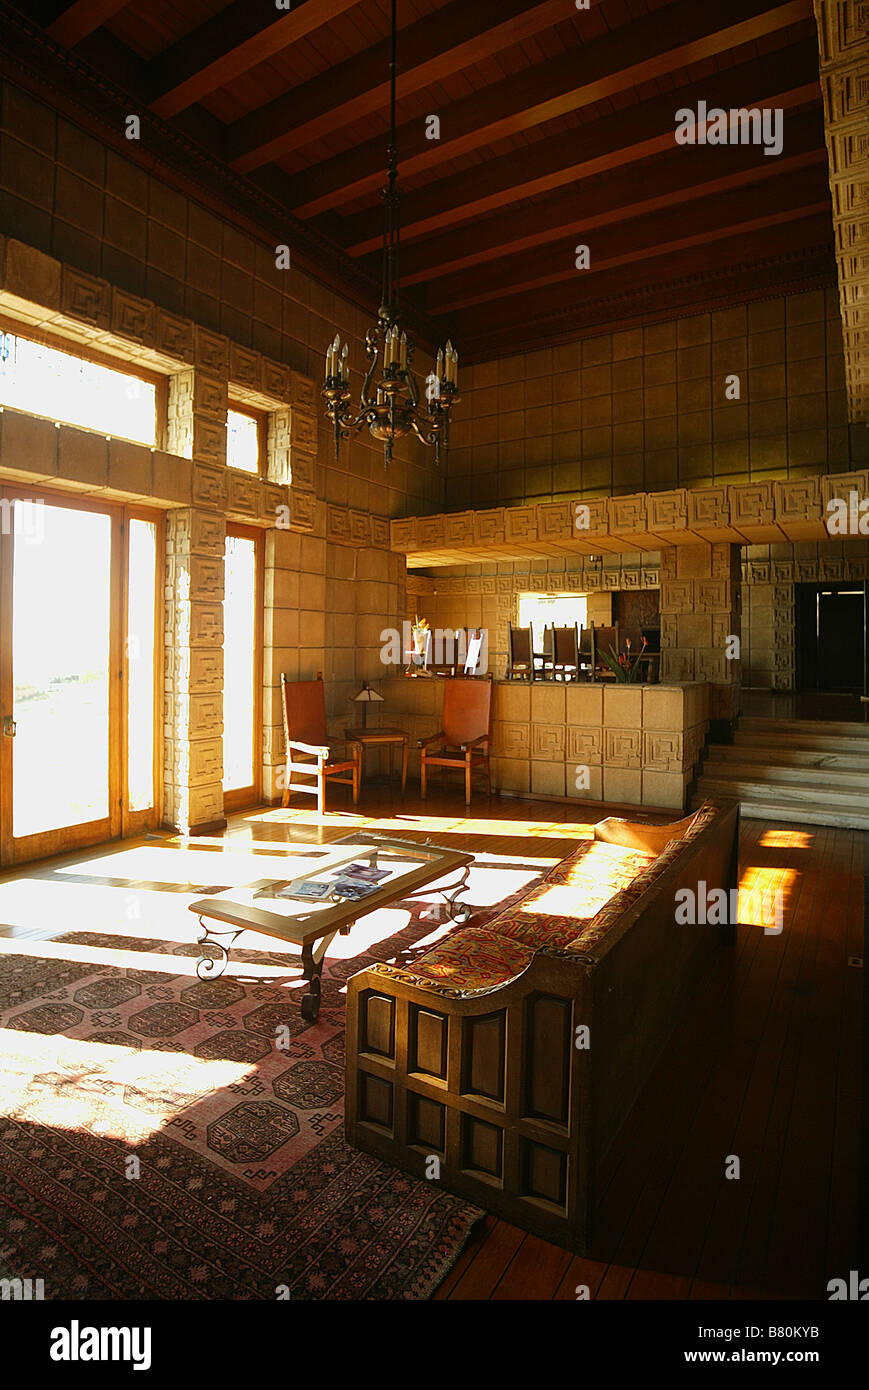 ennis house stockfotos ennis house bilder alamy. Black Bedroom Furniture Sets. Home Design Ideas